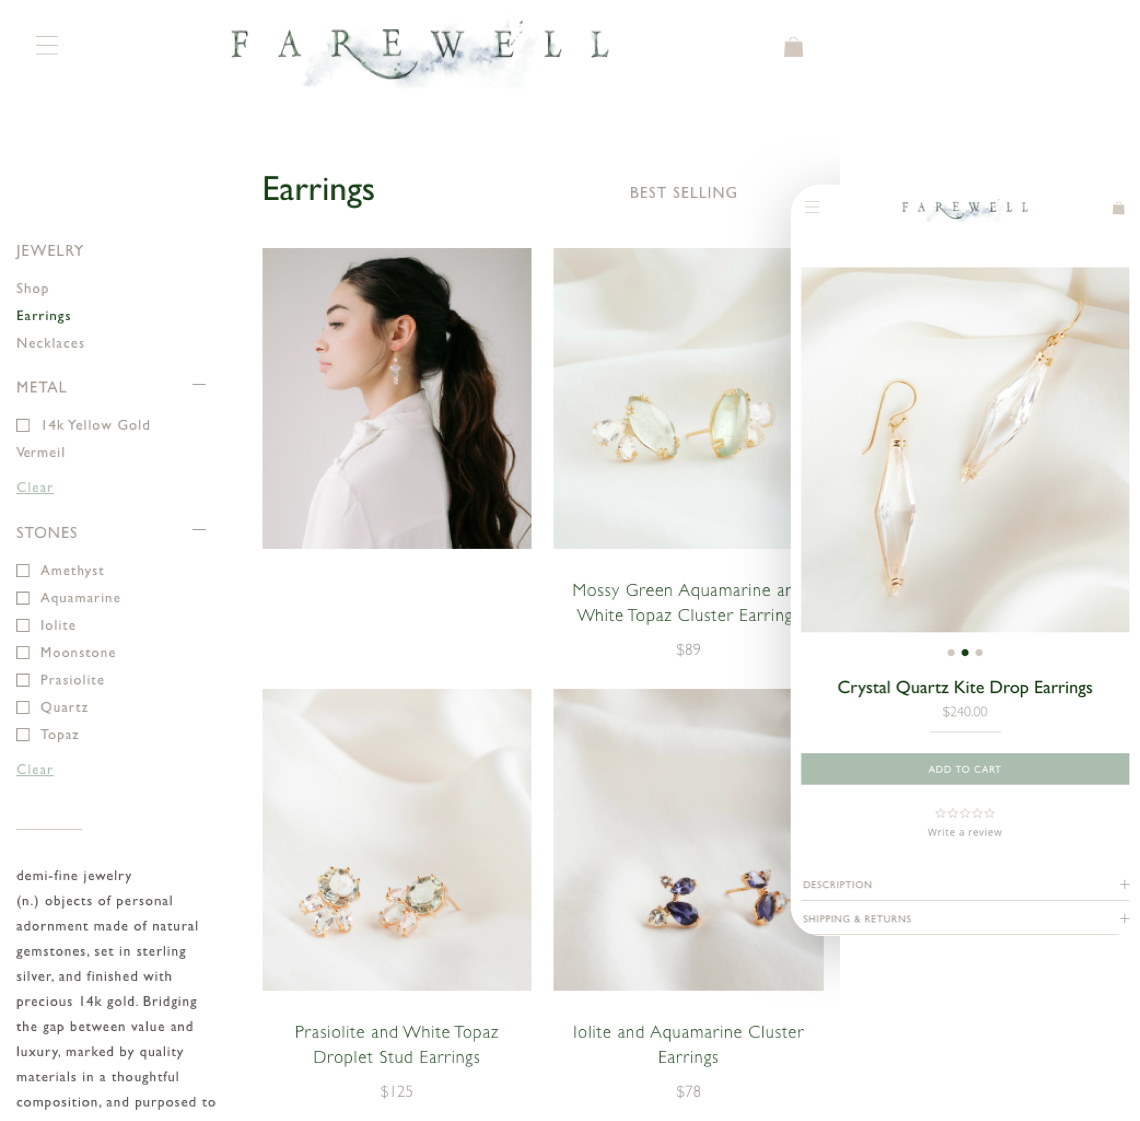 Farewell Jewelry - Mobile Devices